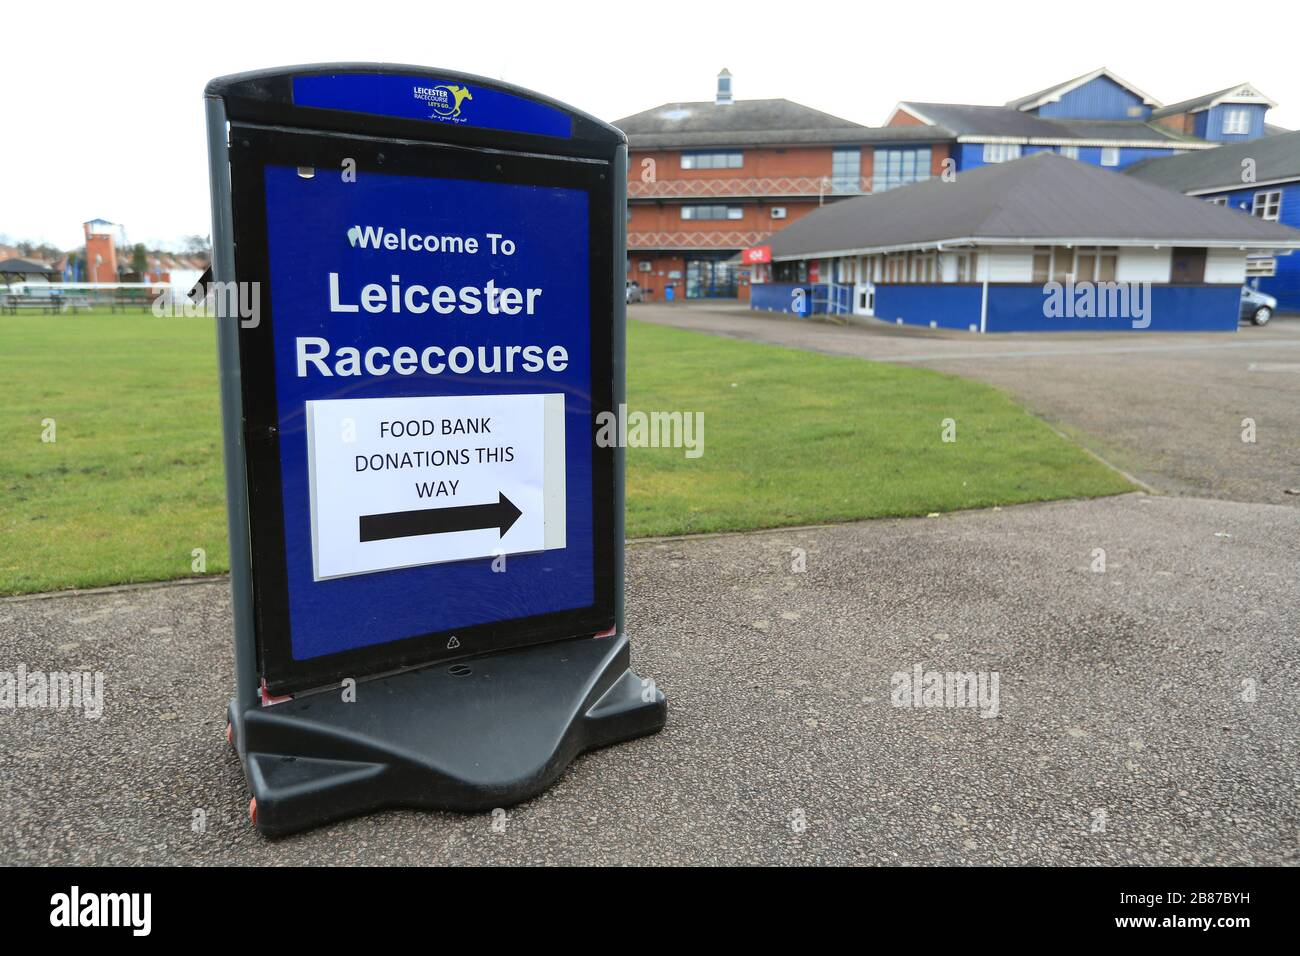 A general view of a sign for a food donation bank at Leicester racecourse as racing in Britain is on hold until the end of April at the earliest. Stock Photo